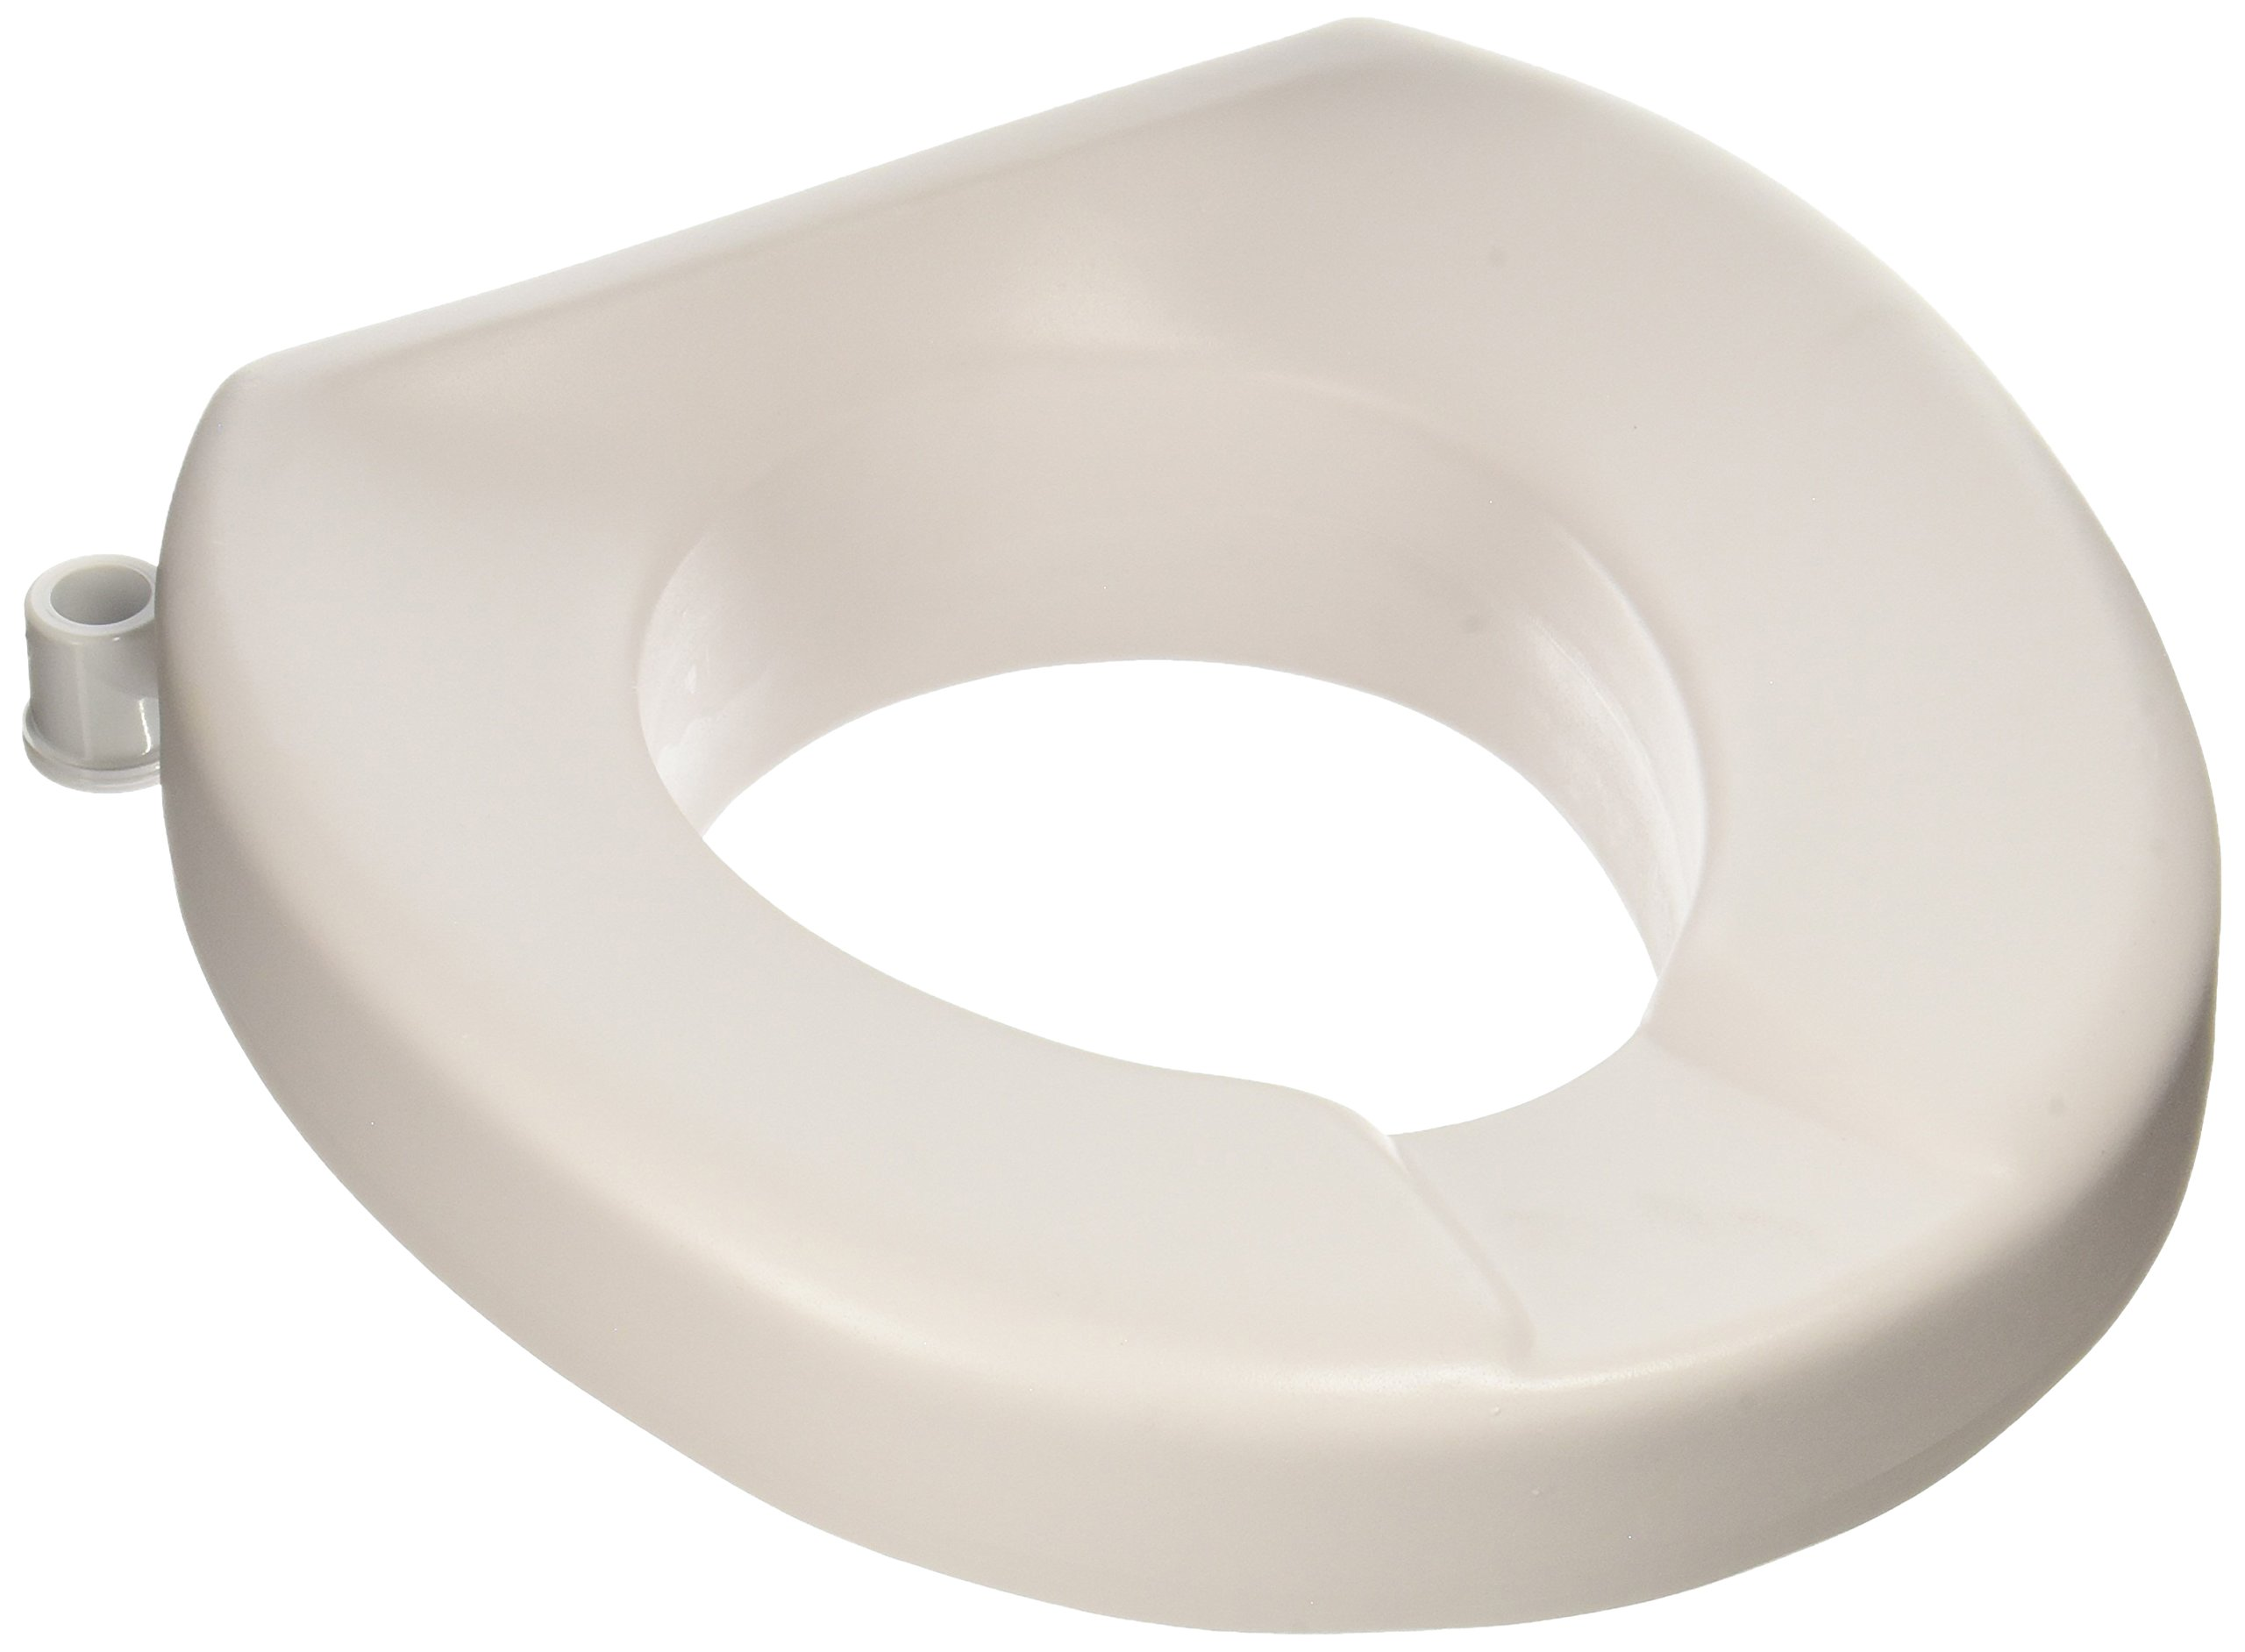 Maddak Tall-Ette 2-Inch Elevated Toilet Seat Compatible with Elongated and Standard Toilets (725831002) by SP Ableware